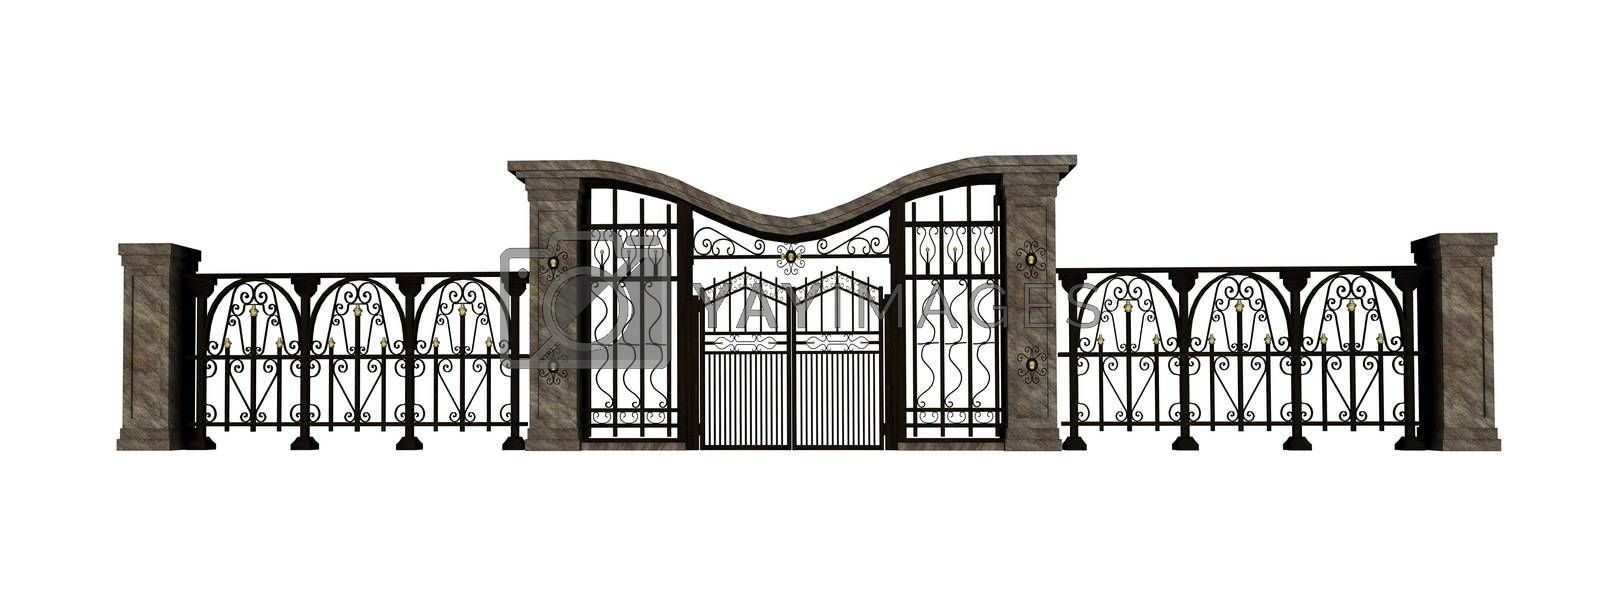 Royalty free image of Iron gate and fence by Elenaphotos21